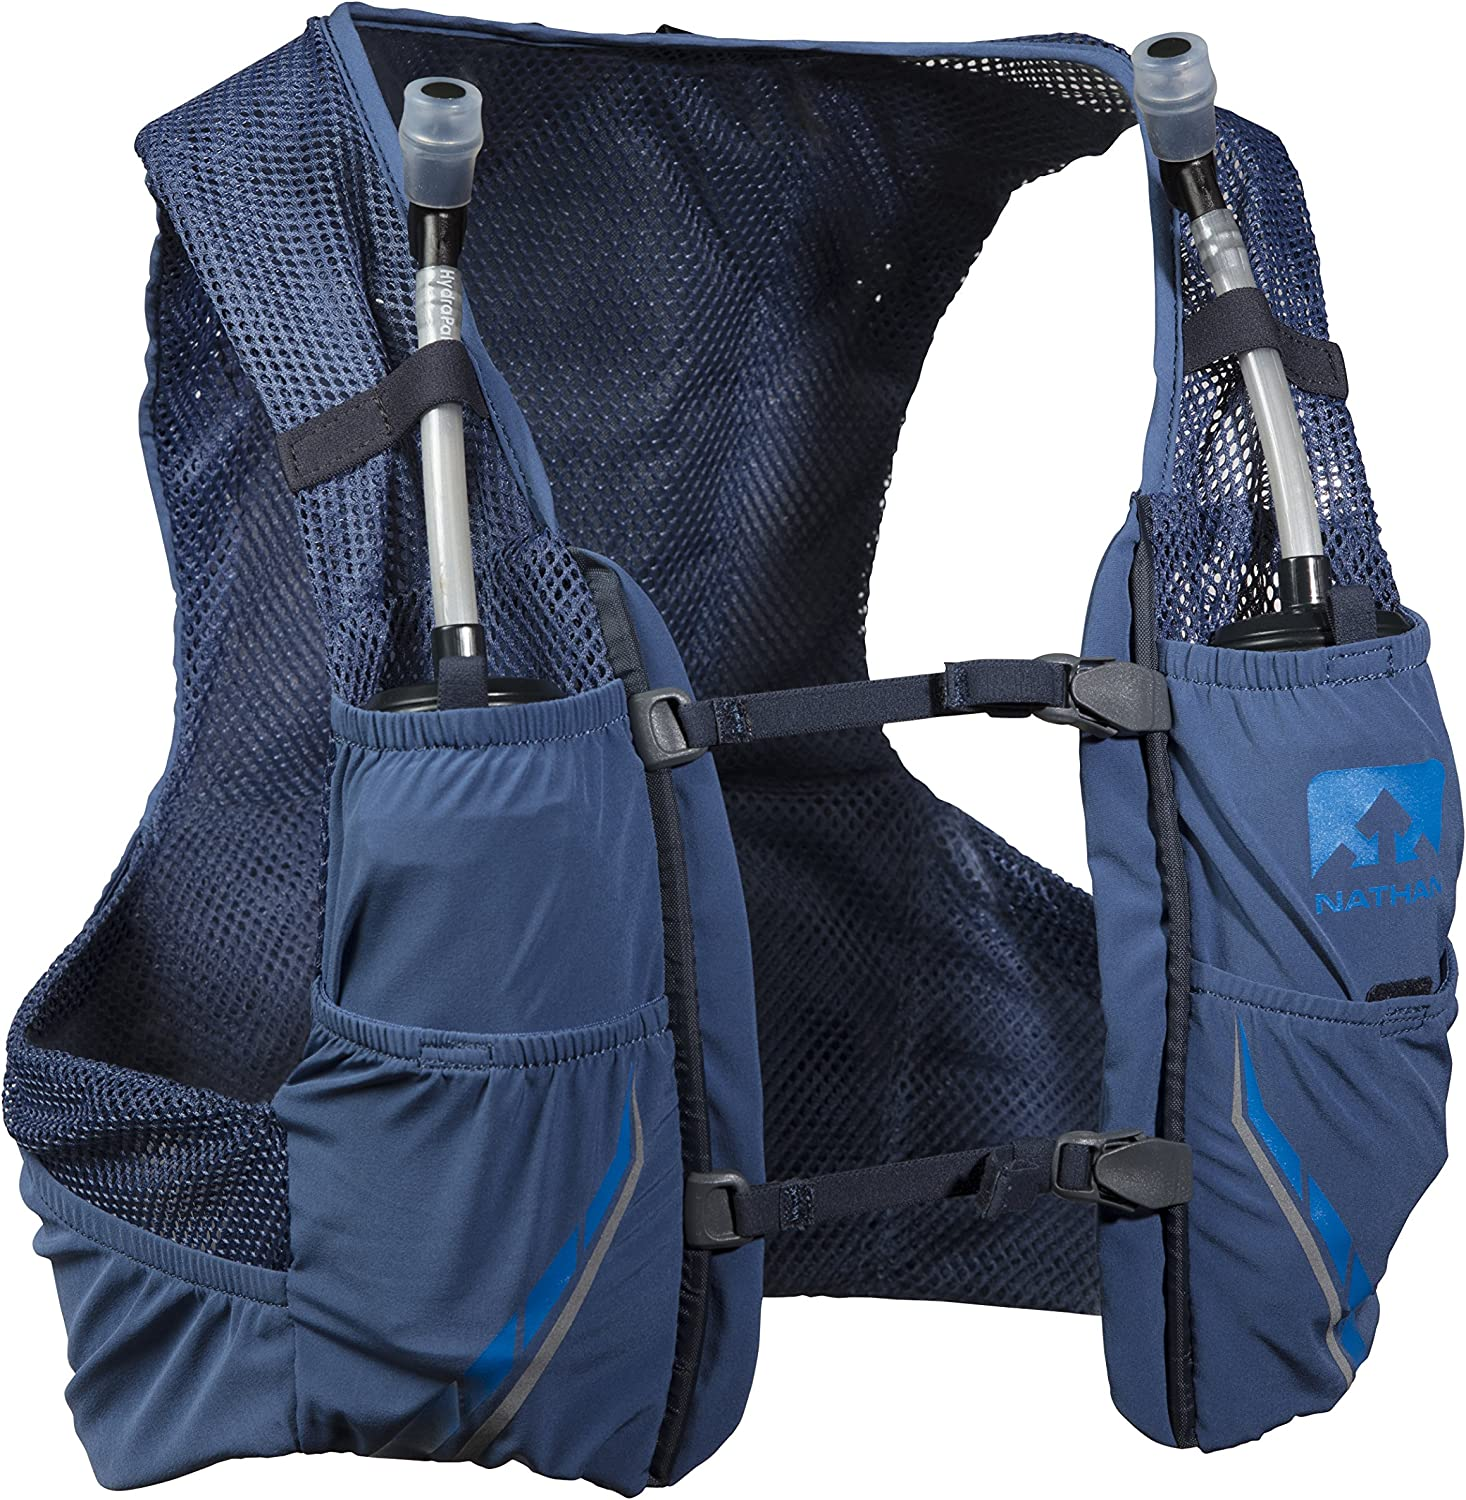 Nathan NS4544-0377-35 Male 2.5L Running Hydration Packs, True Navy Blue Nights, X-Large